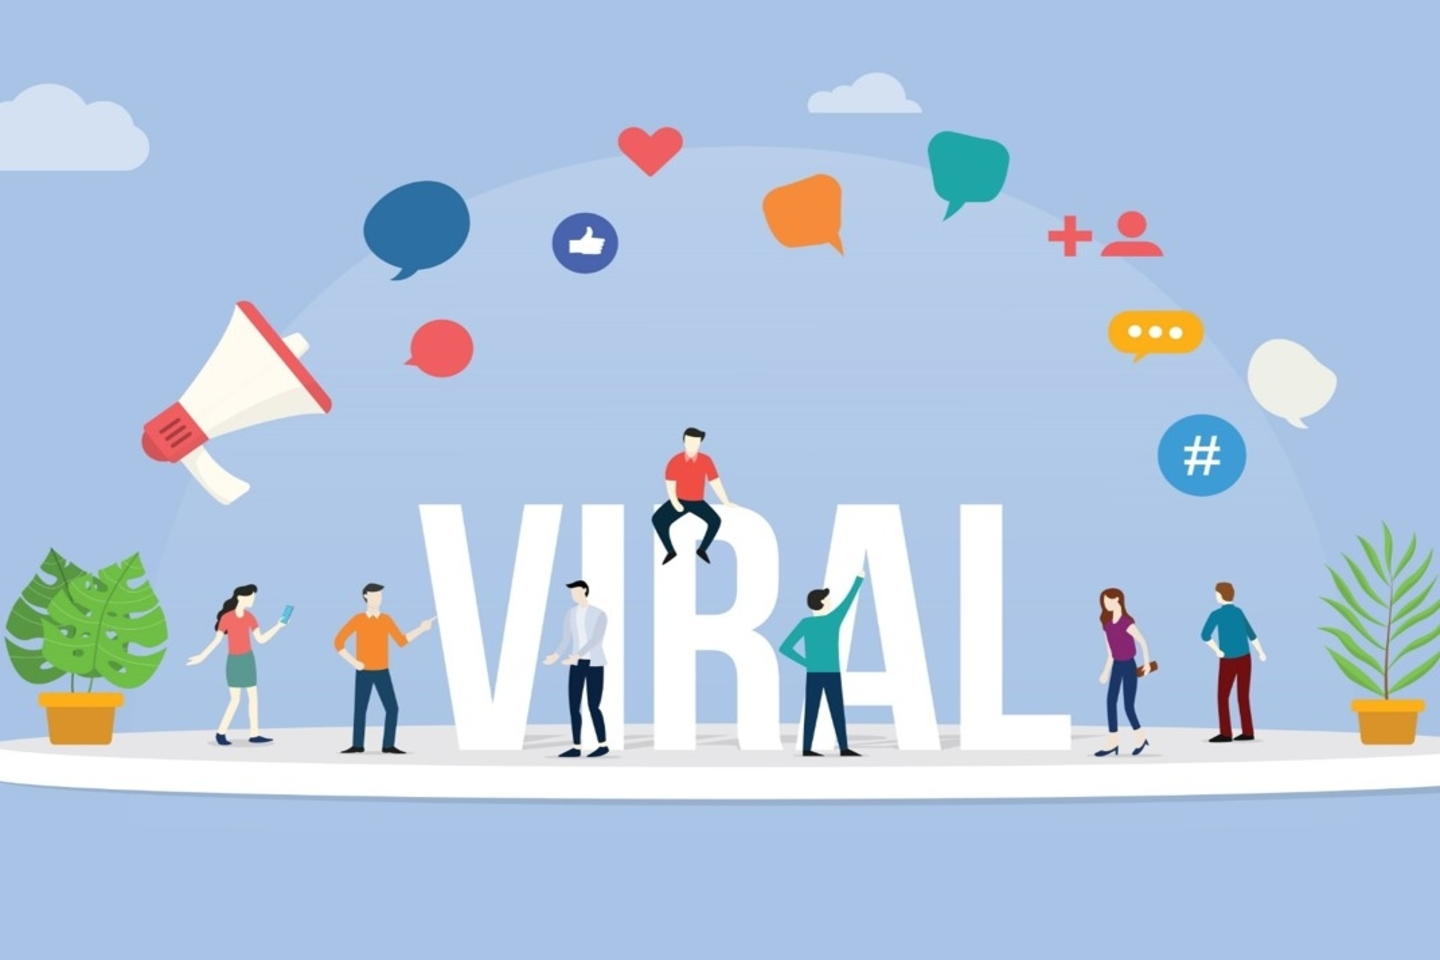 Viral Marketing for the brands to get an instant spotlight